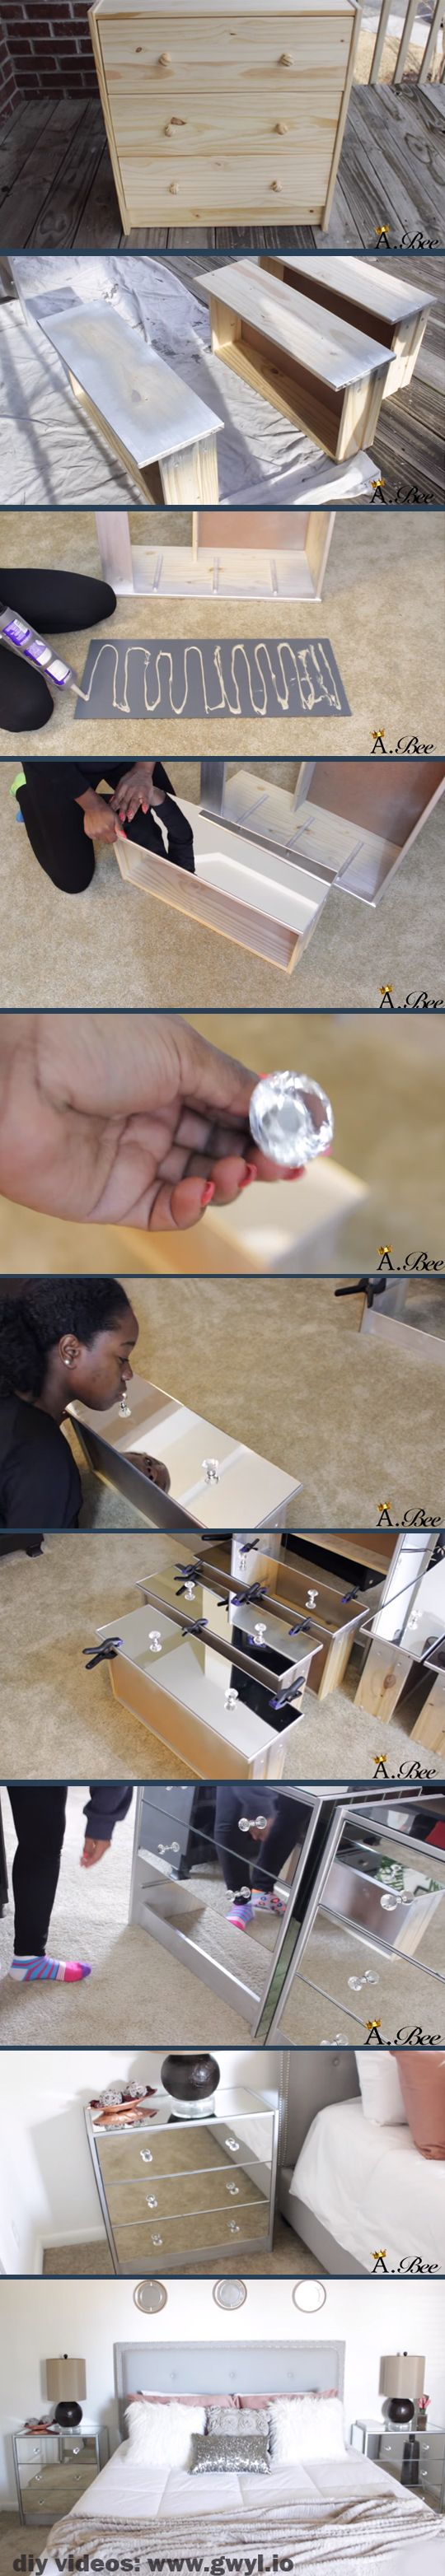 Here's another DIY that's super easy to do. Turn your new or old night stand or any cabinet into a fantastic looking furniture using frameless mirrors! | DIY Mirrored Nightstand | See video and written instructions here:  http://gwyl.io/diy-mirrored-nightstand/: